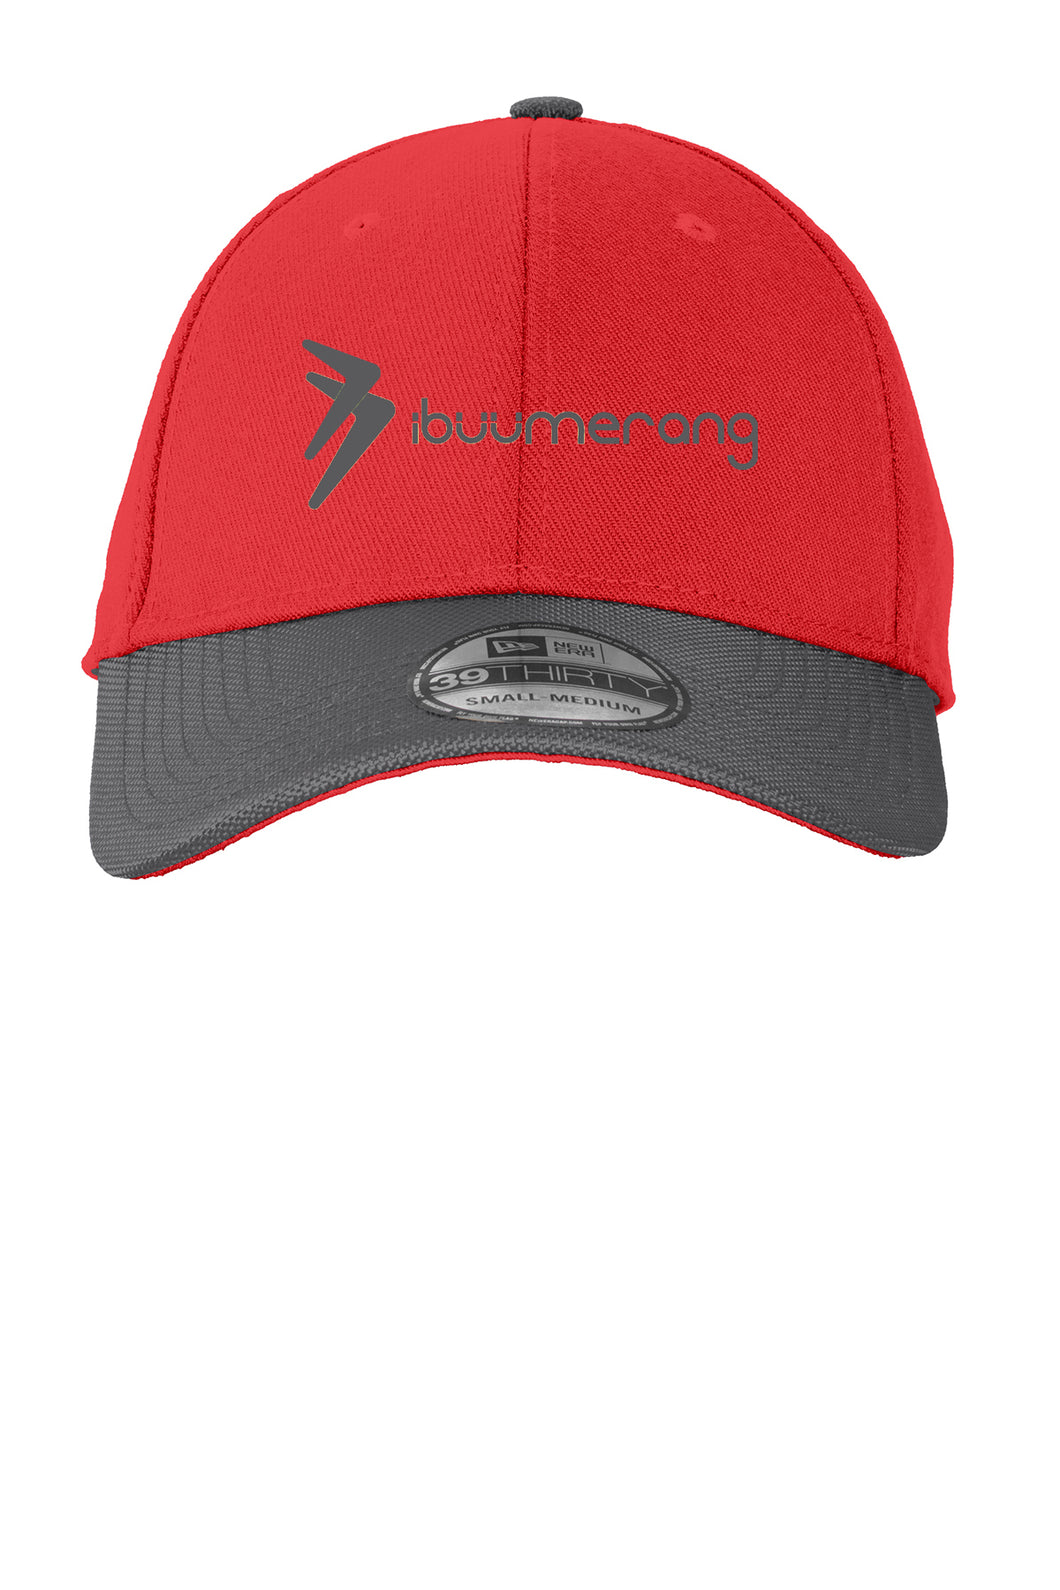 Ballistic Cap (Red and Charcoal)